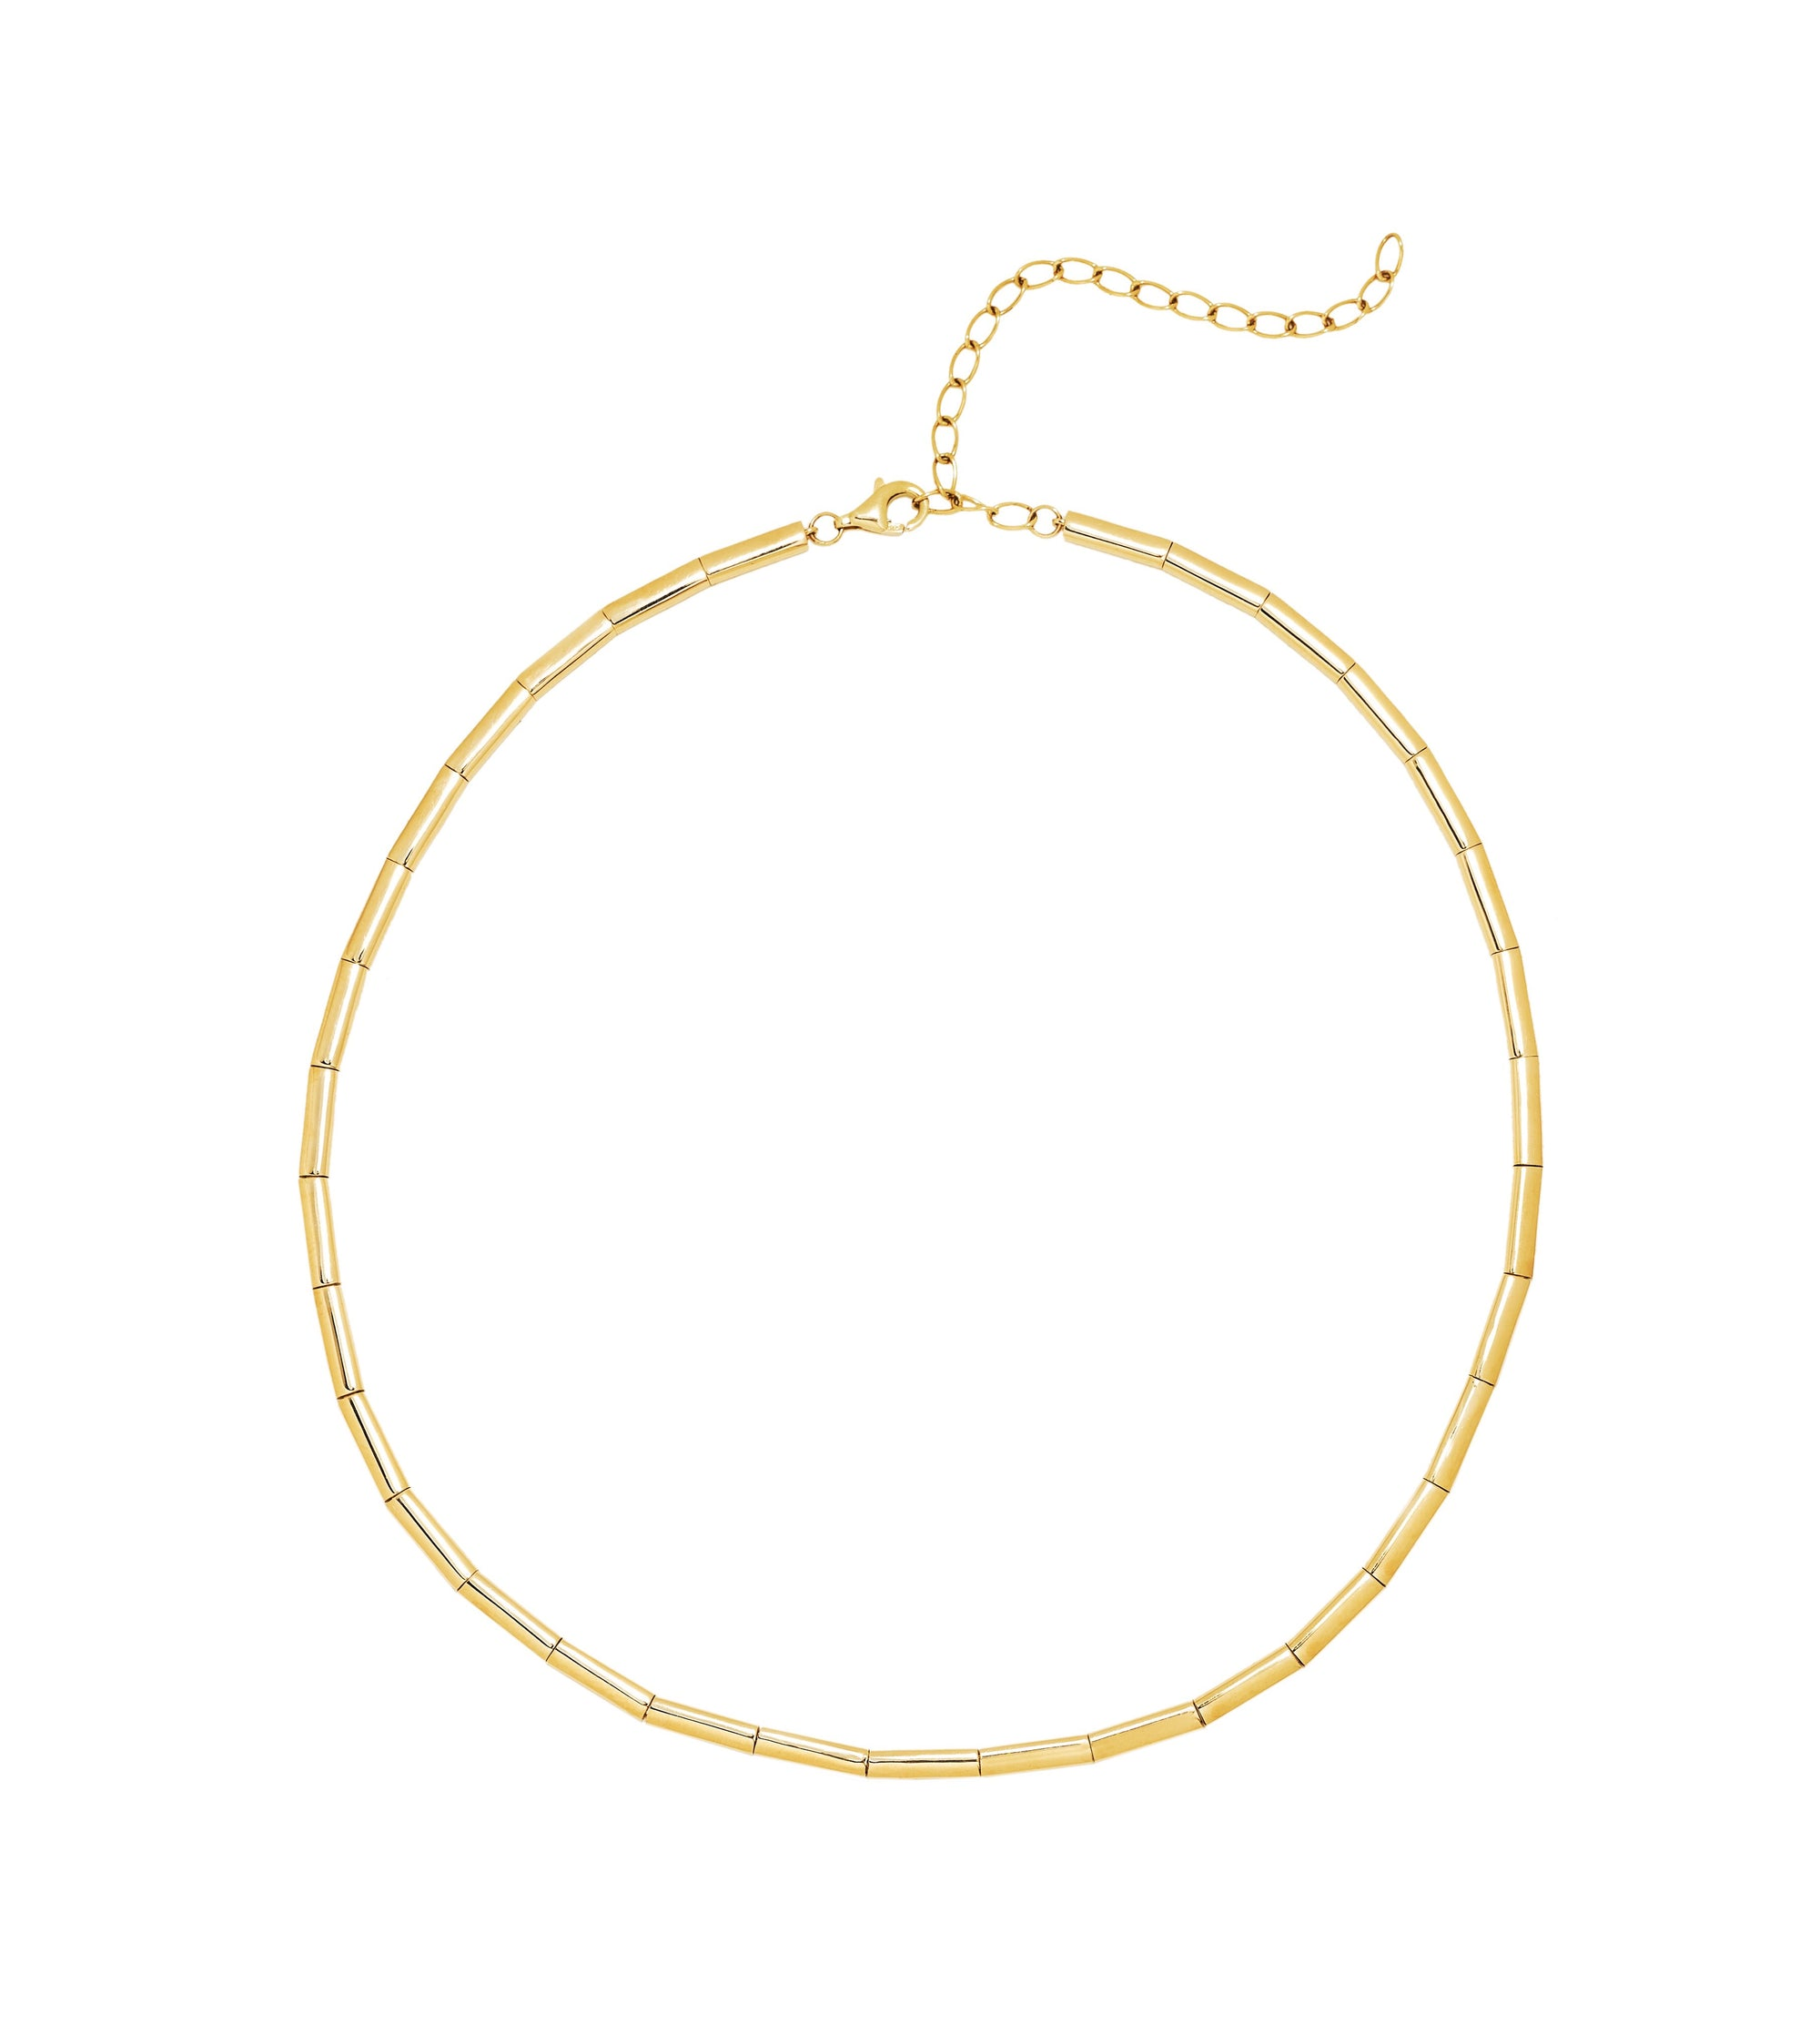 Solid Gold Choker Necklace